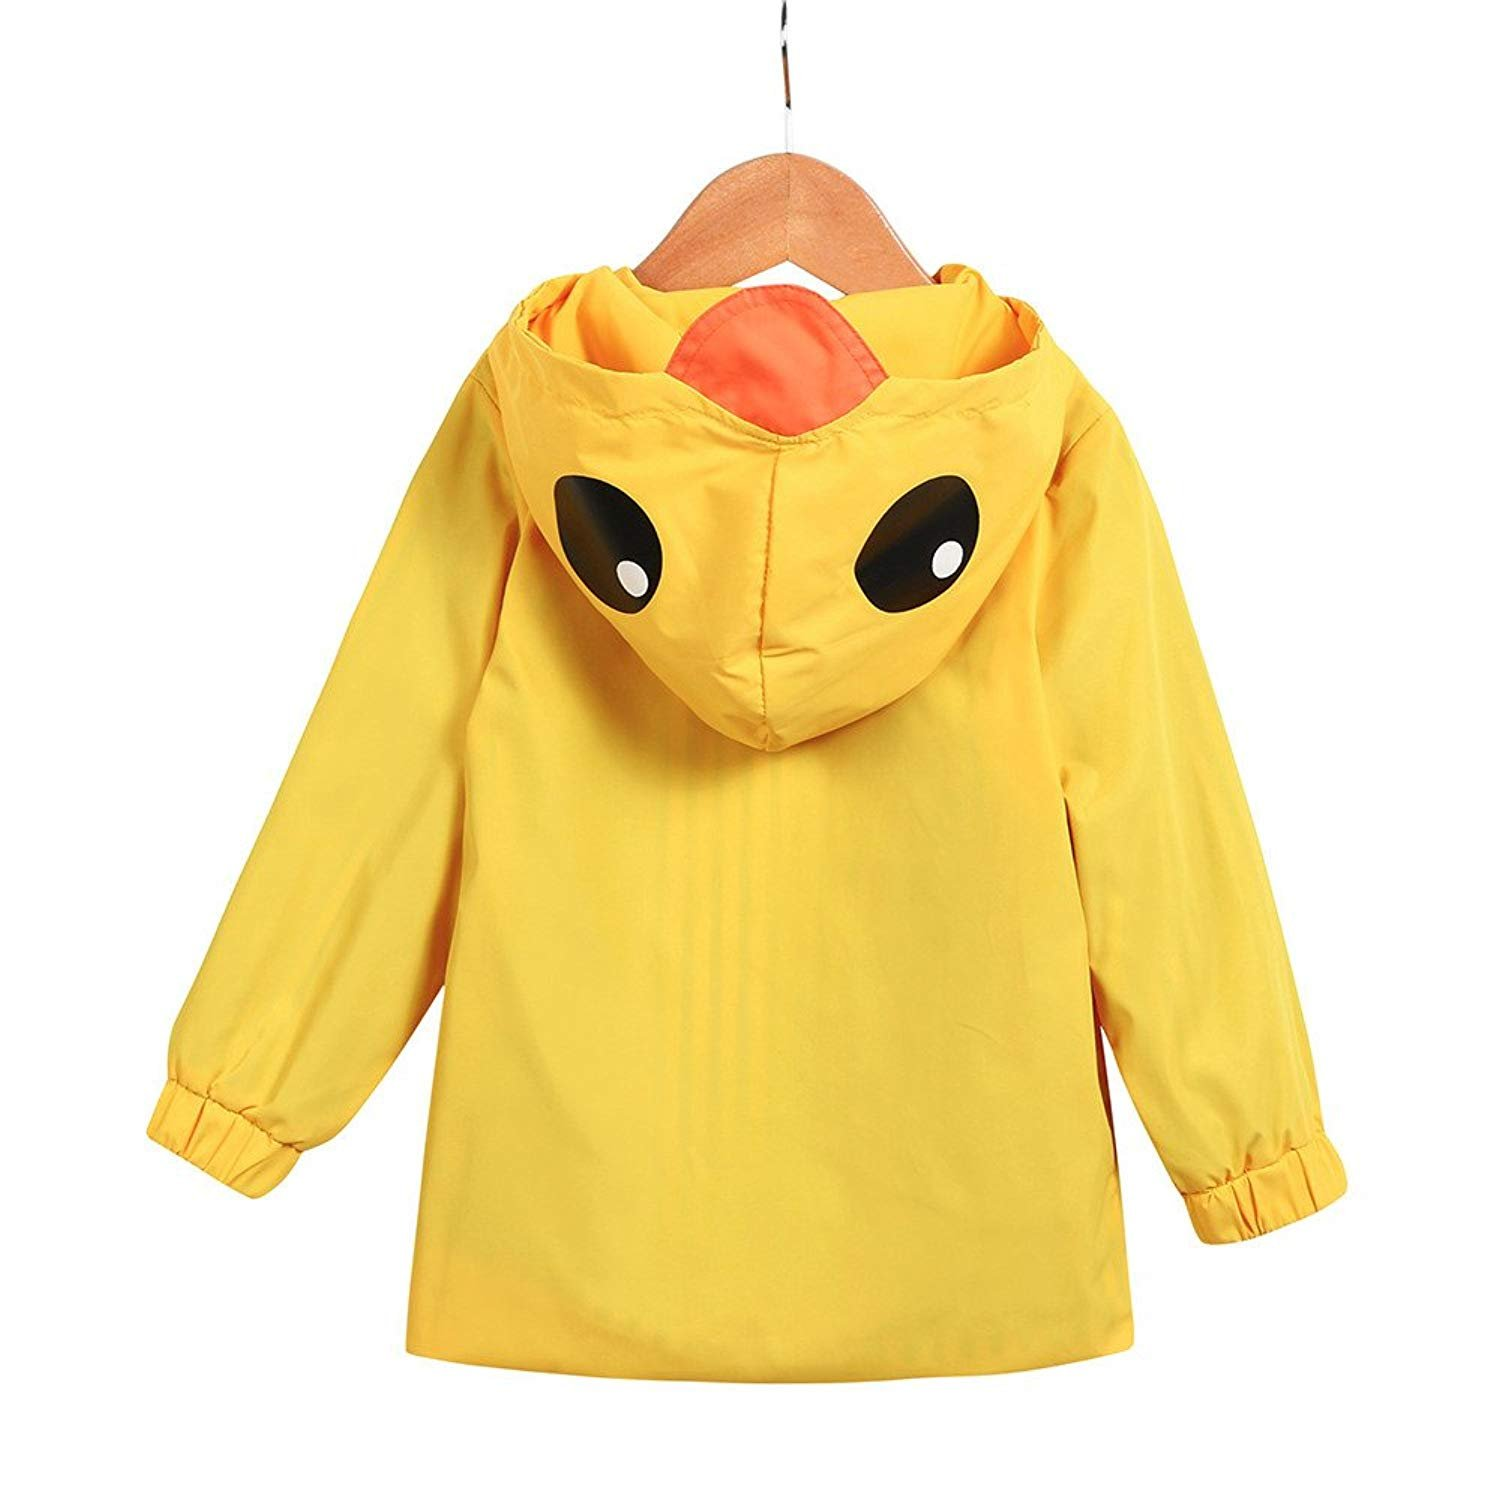 YOUNGER TREE Toddler Baby Boy Girl Duck Raincoat Cute Cartoon Hoodie Zipper Coat Outfit (Yellow, 80) by YOUNGER TREE (Image #6)